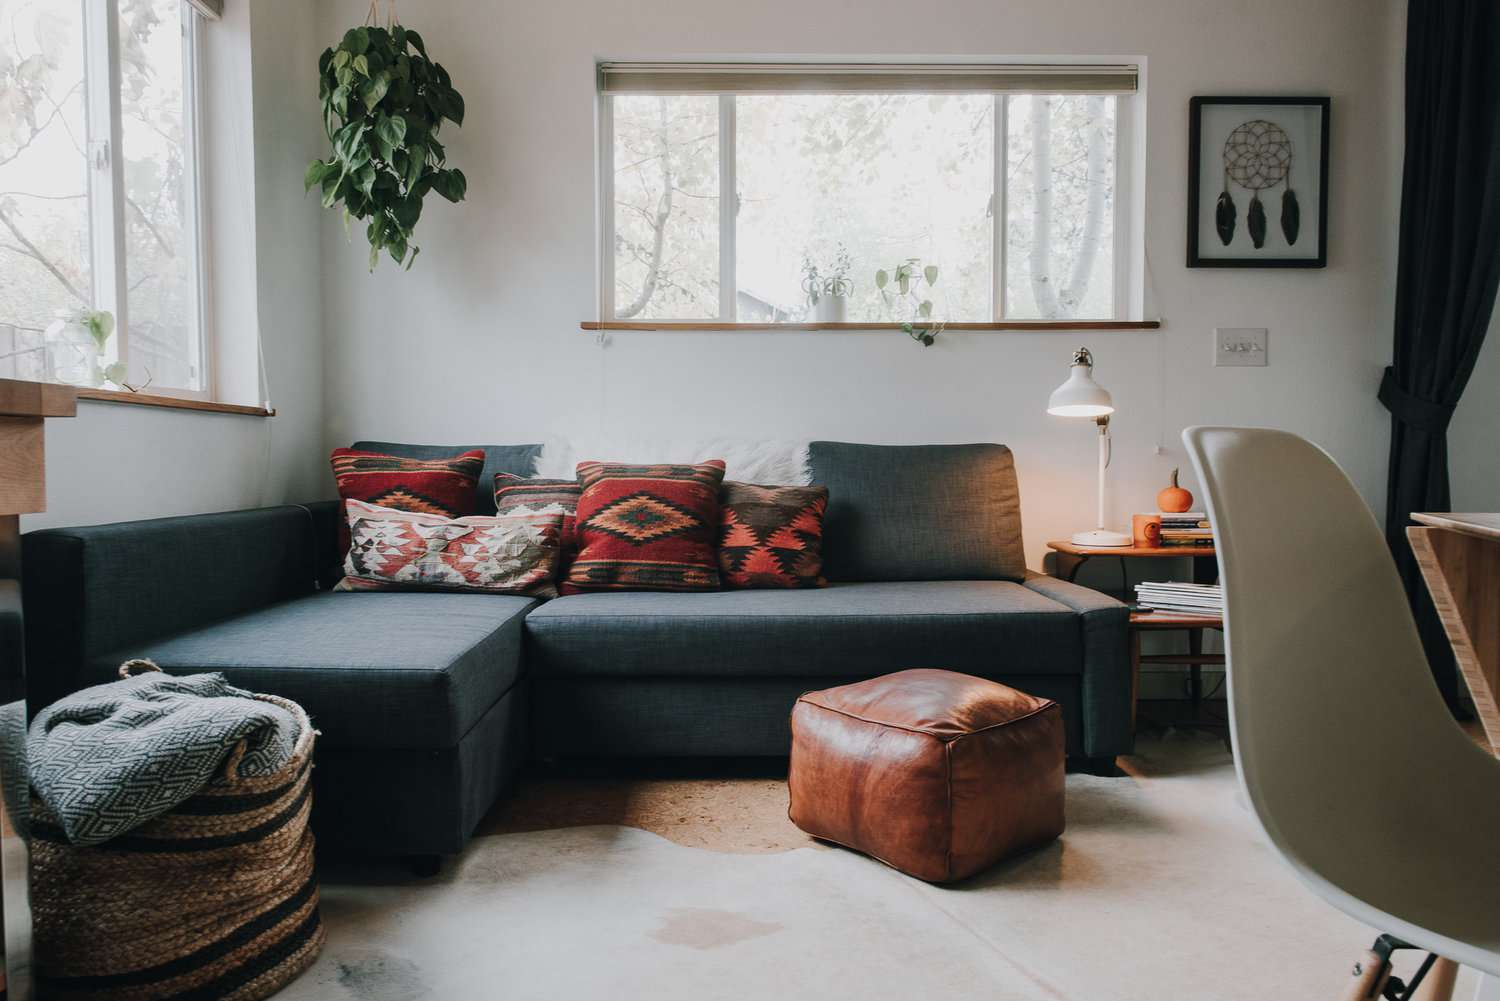 A gray sectional couch in a white room.